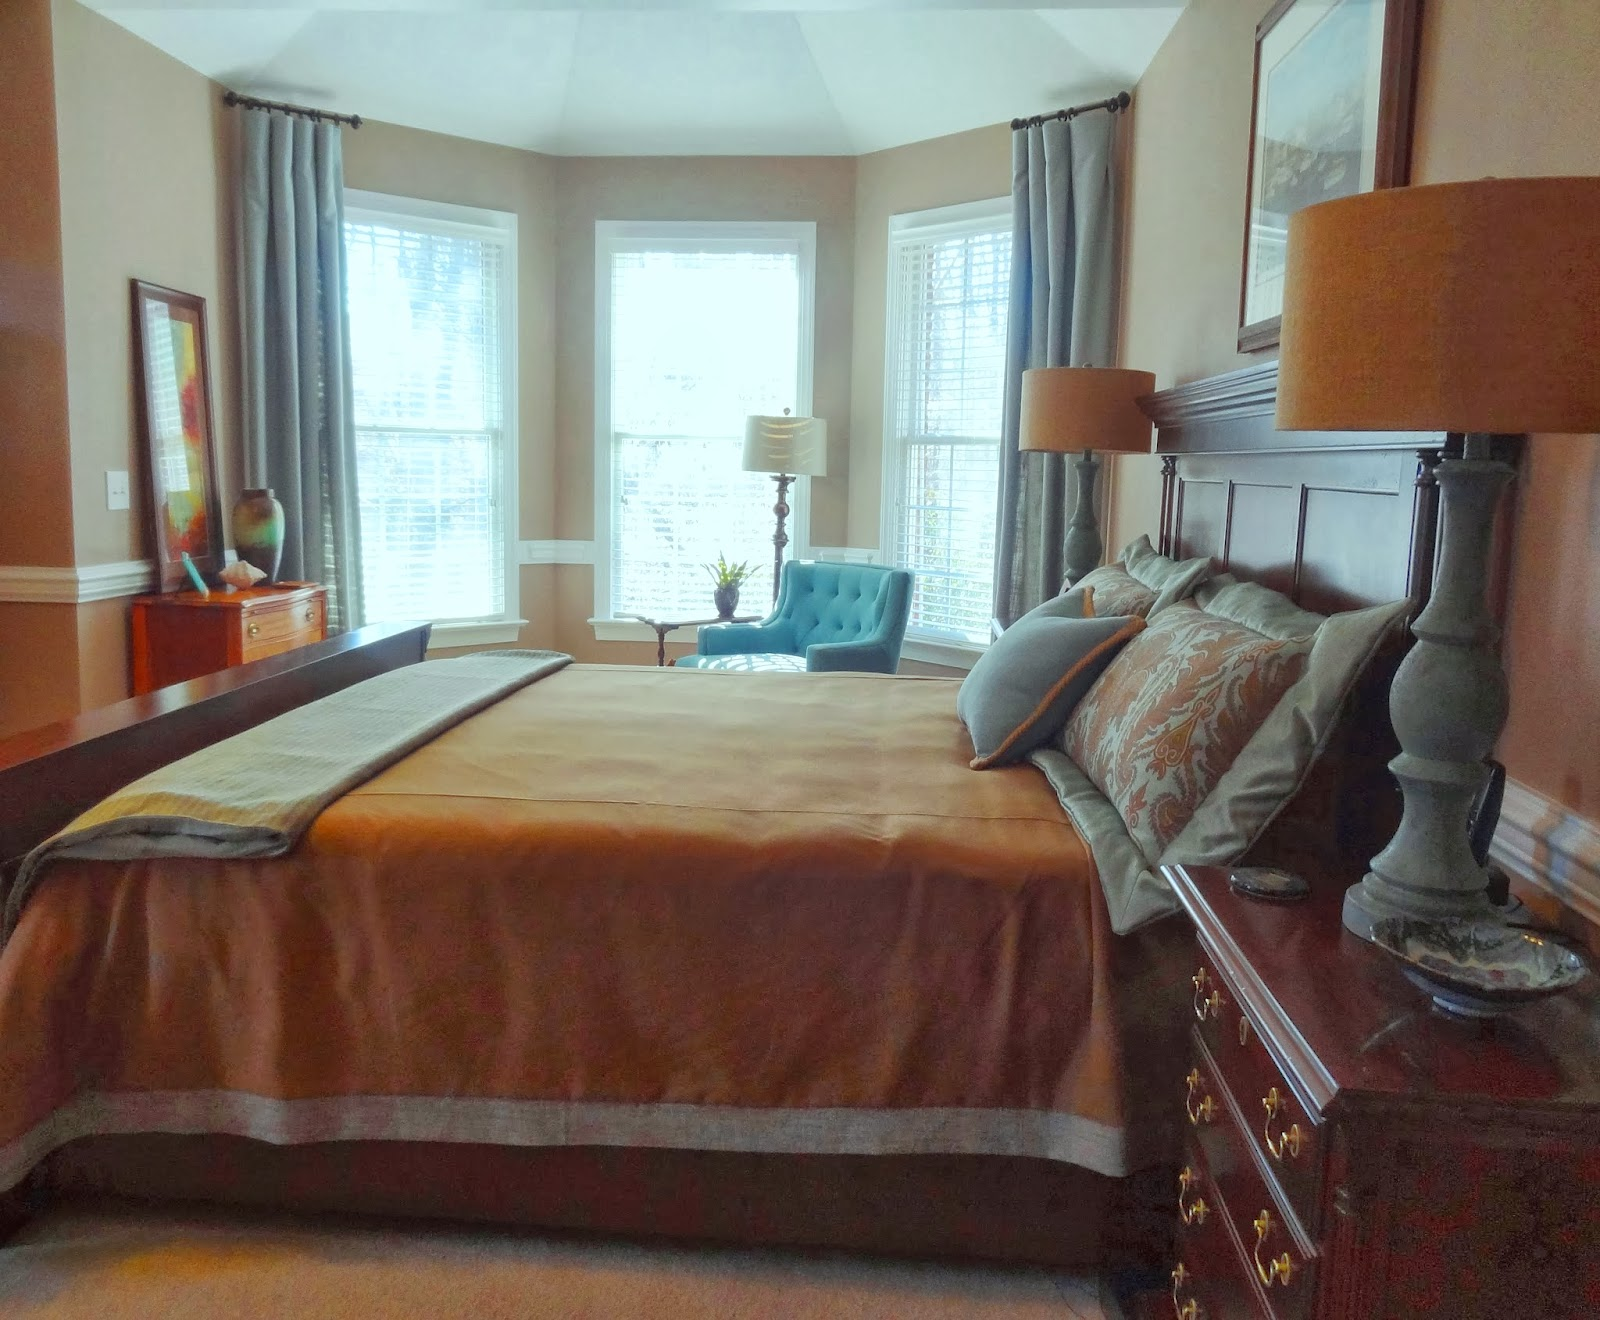 How Many Throw Pillows On The Bed 7 Must Read Tips To